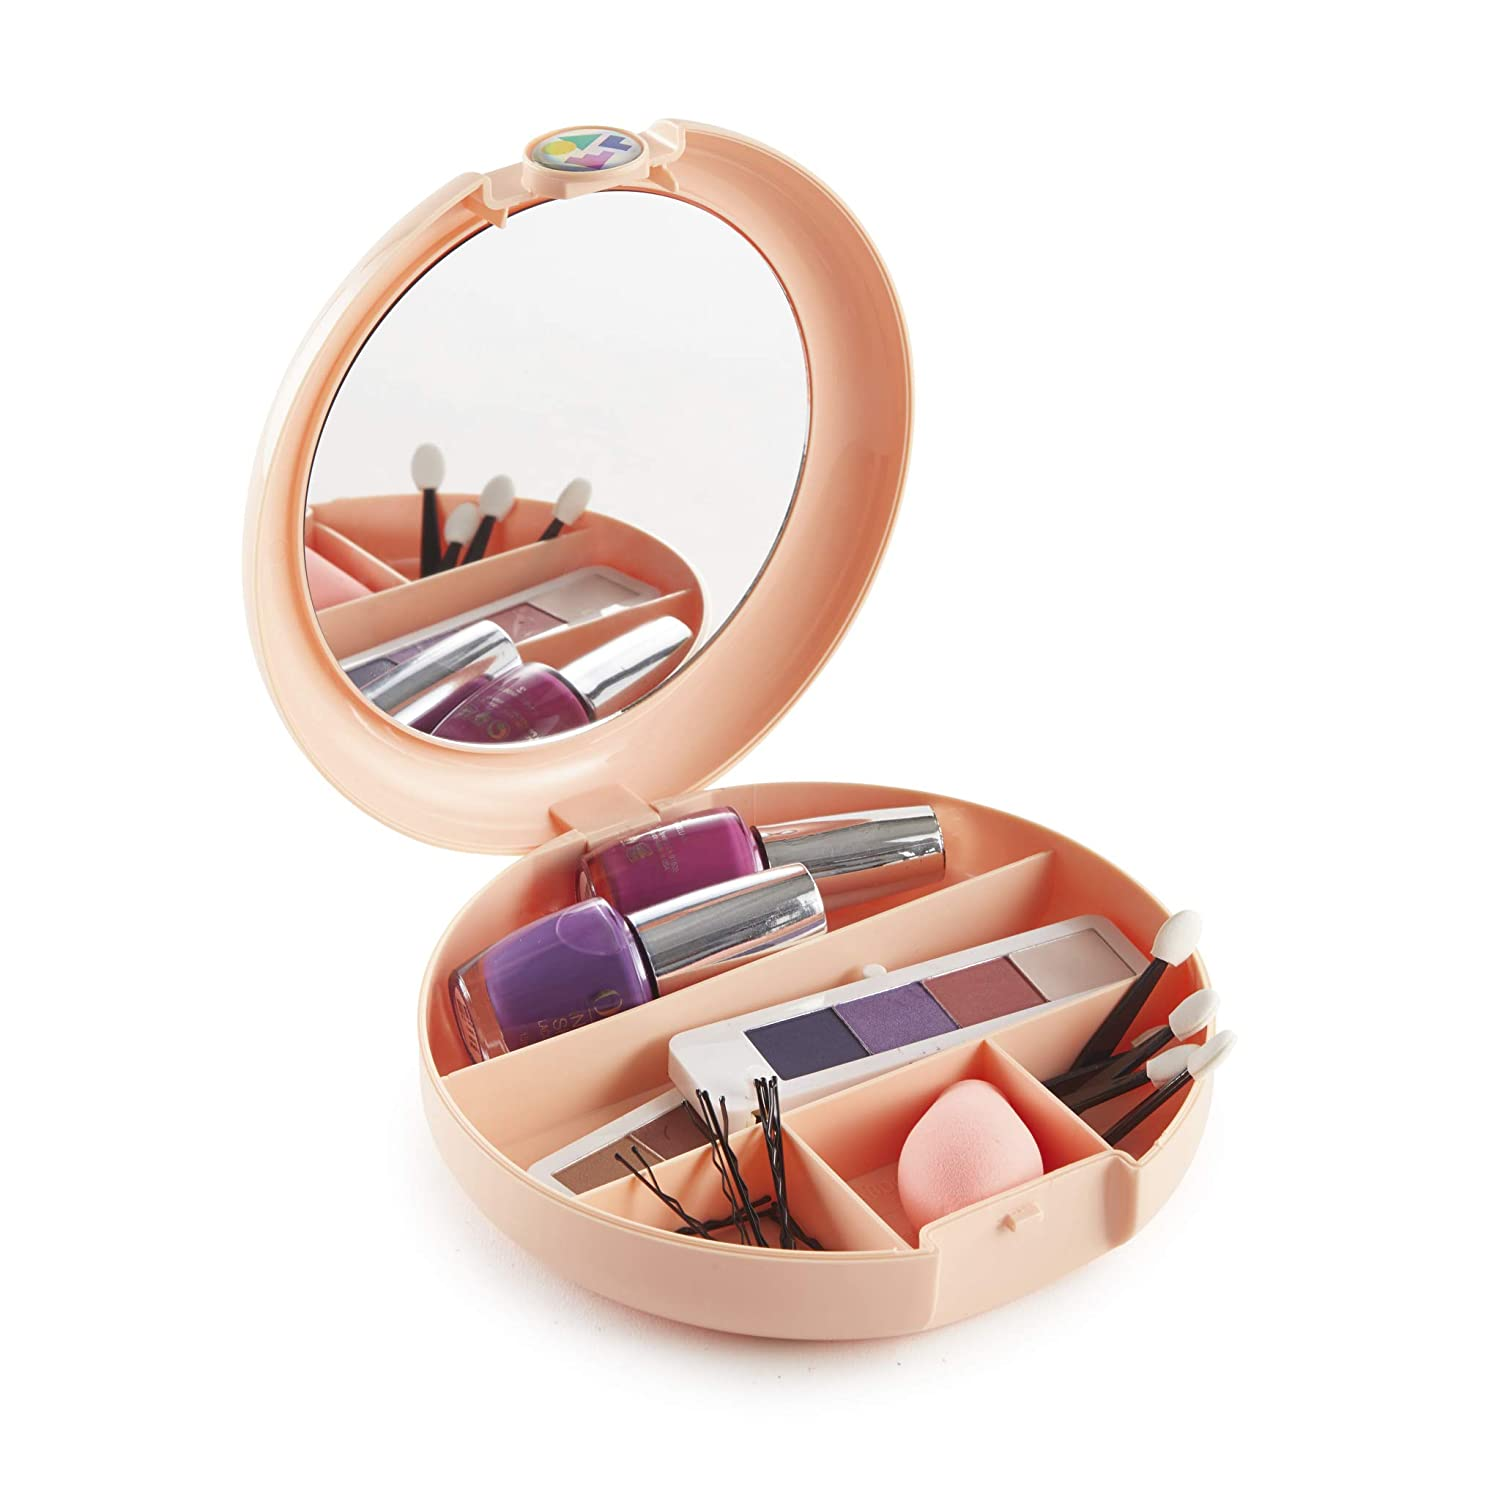 Caboodles Cosmic Cosmetic Retro Compact, Peach